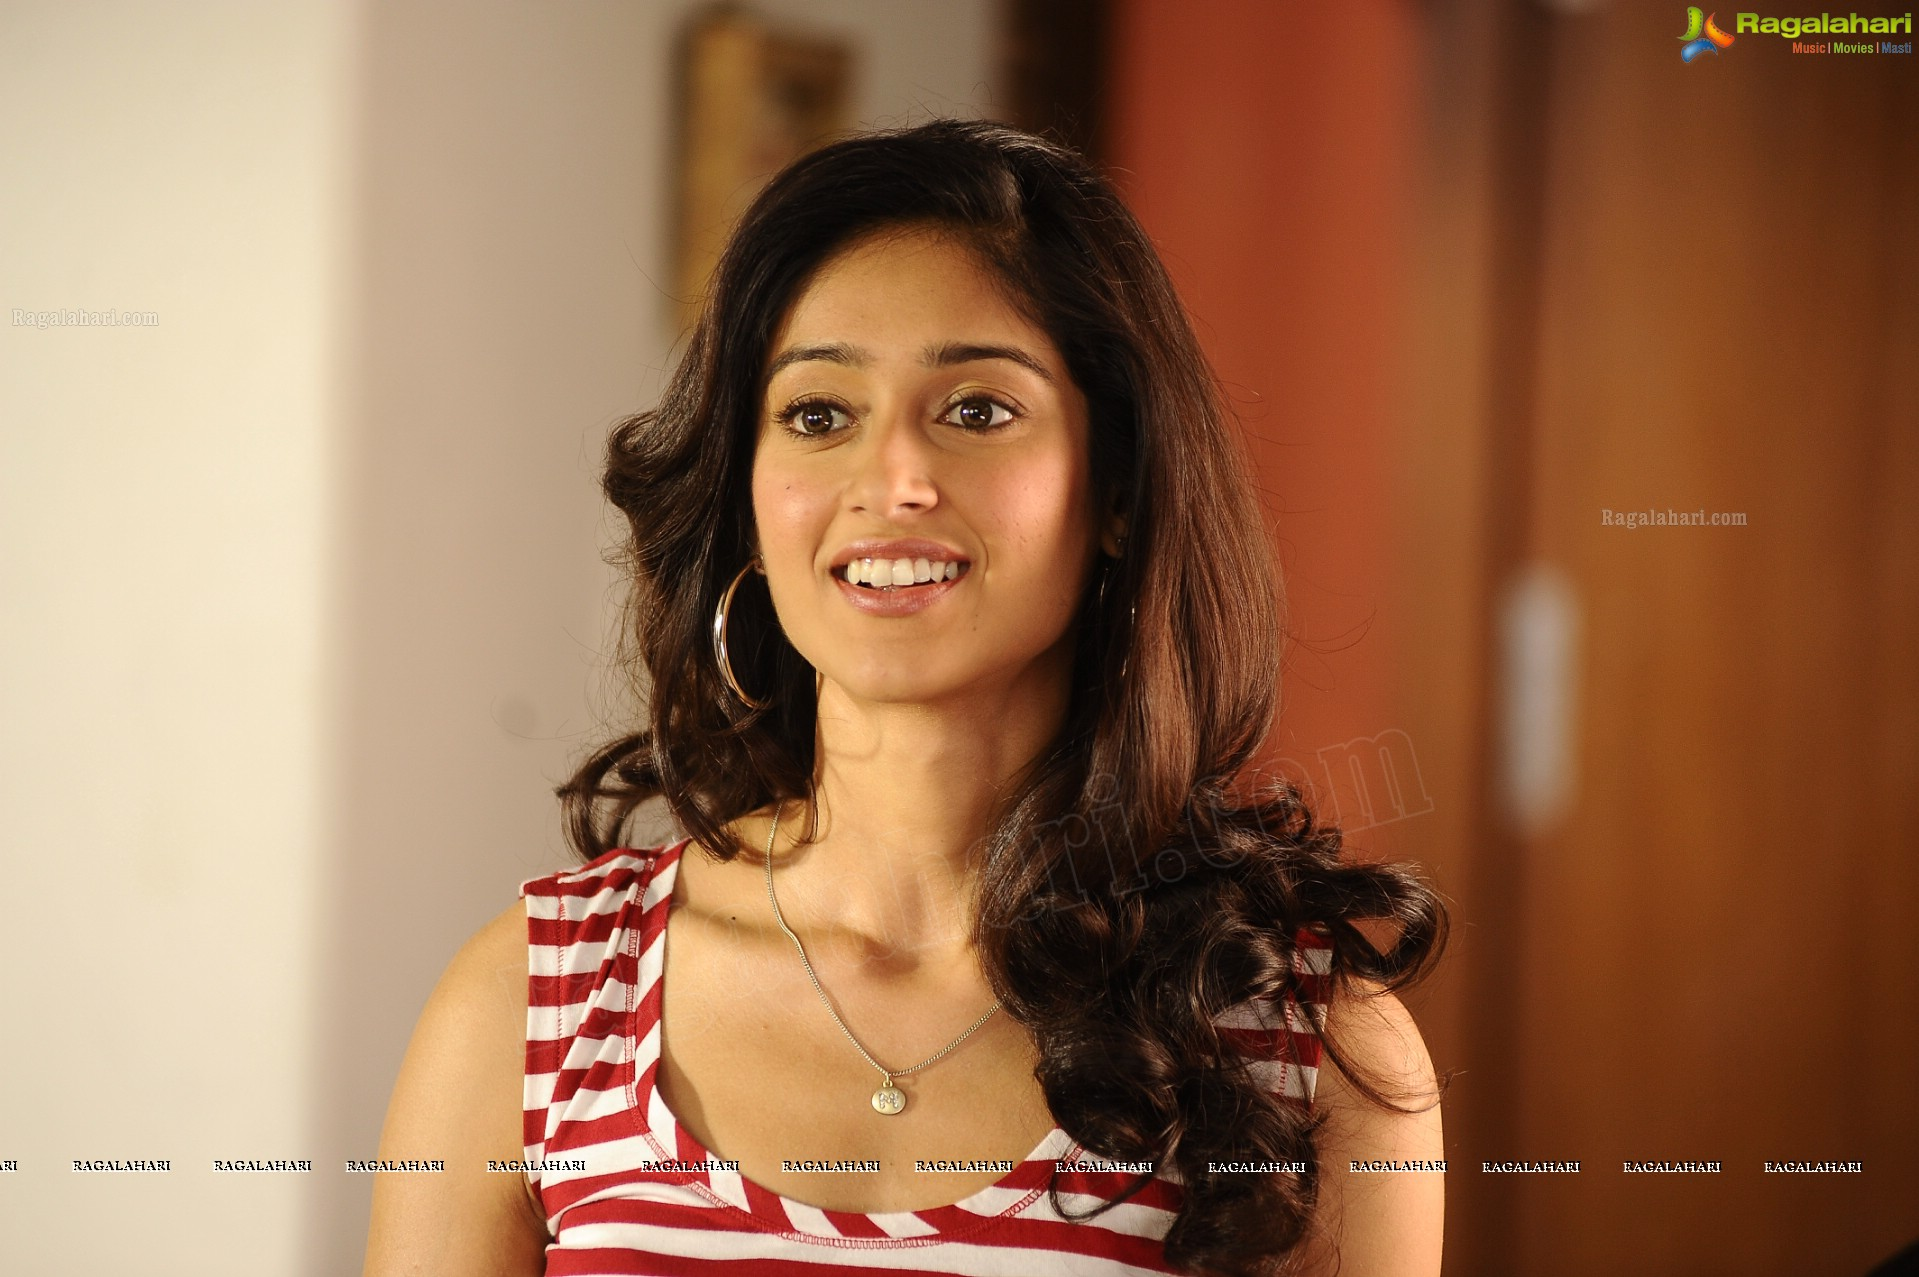 ileana (hd) image 54 | tollywood heroines gallery,images, photos